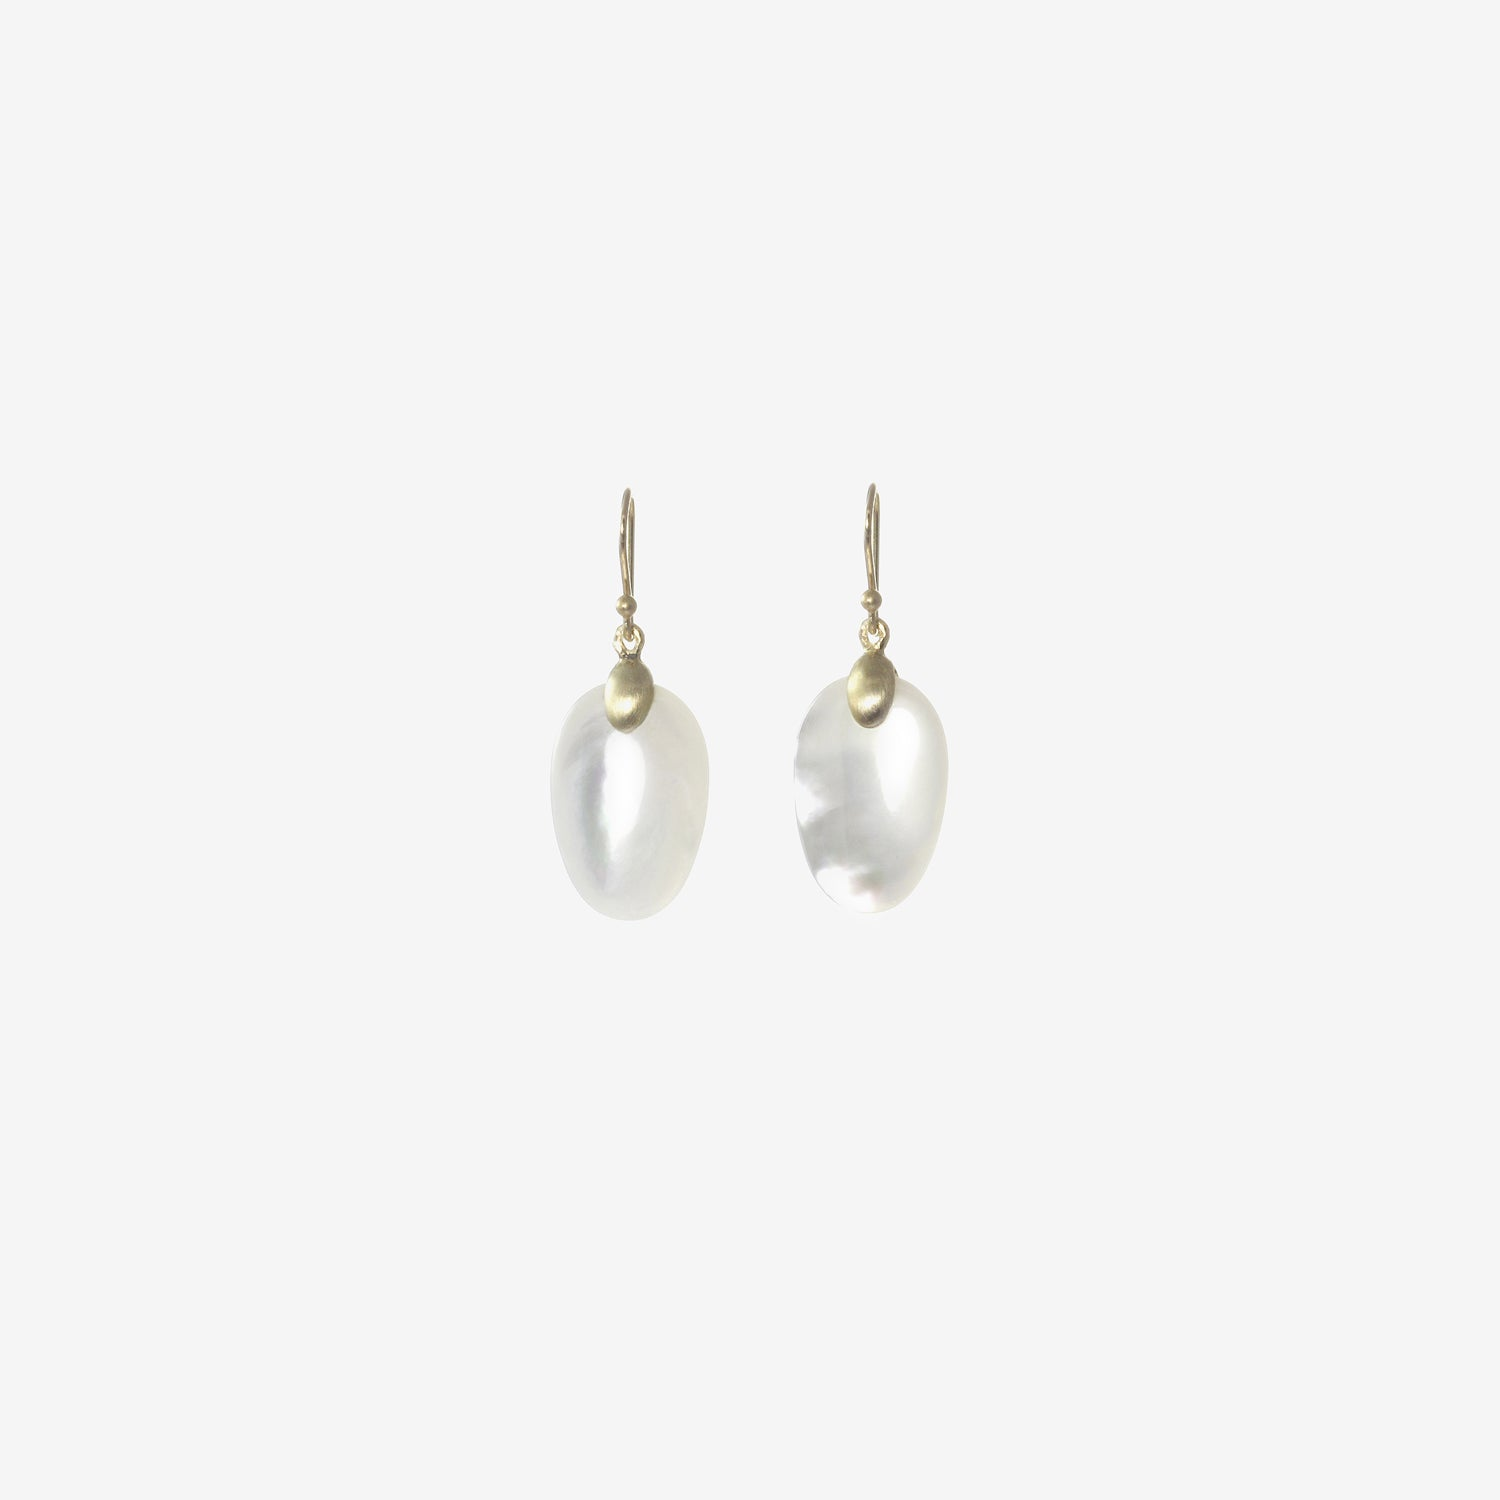 Small hoop earrings with mother of Pearl Chips